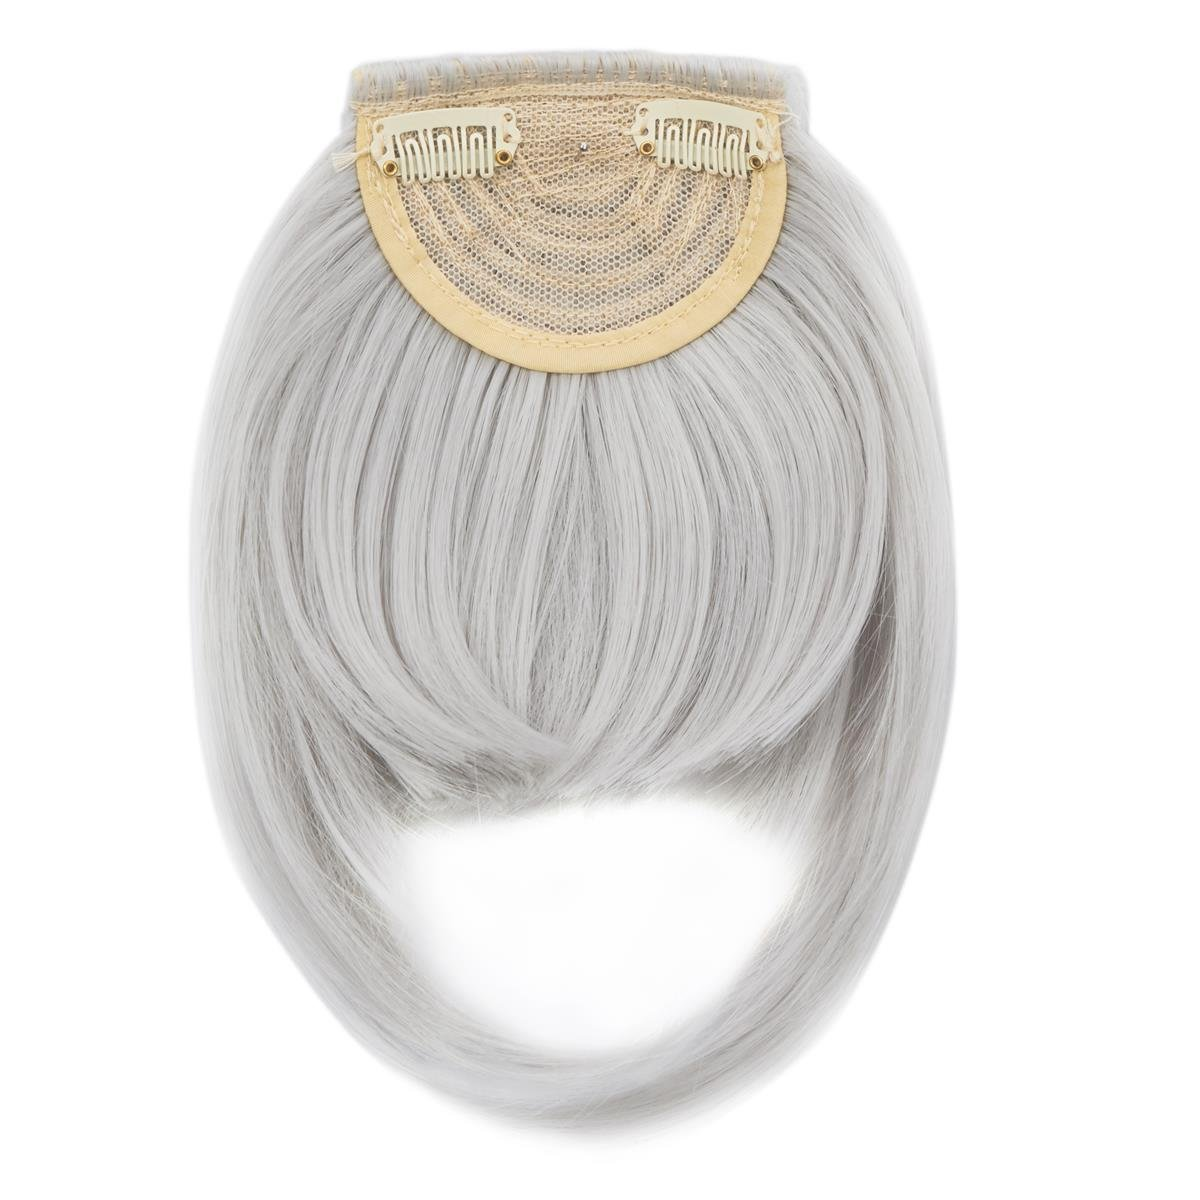 FOCUSSEXY Front Neat Hair Bangs Cosplay Synthetic Heat Resistant Natural Hair Wigs As Real Hair by FOCUSSEXY (Image #3)